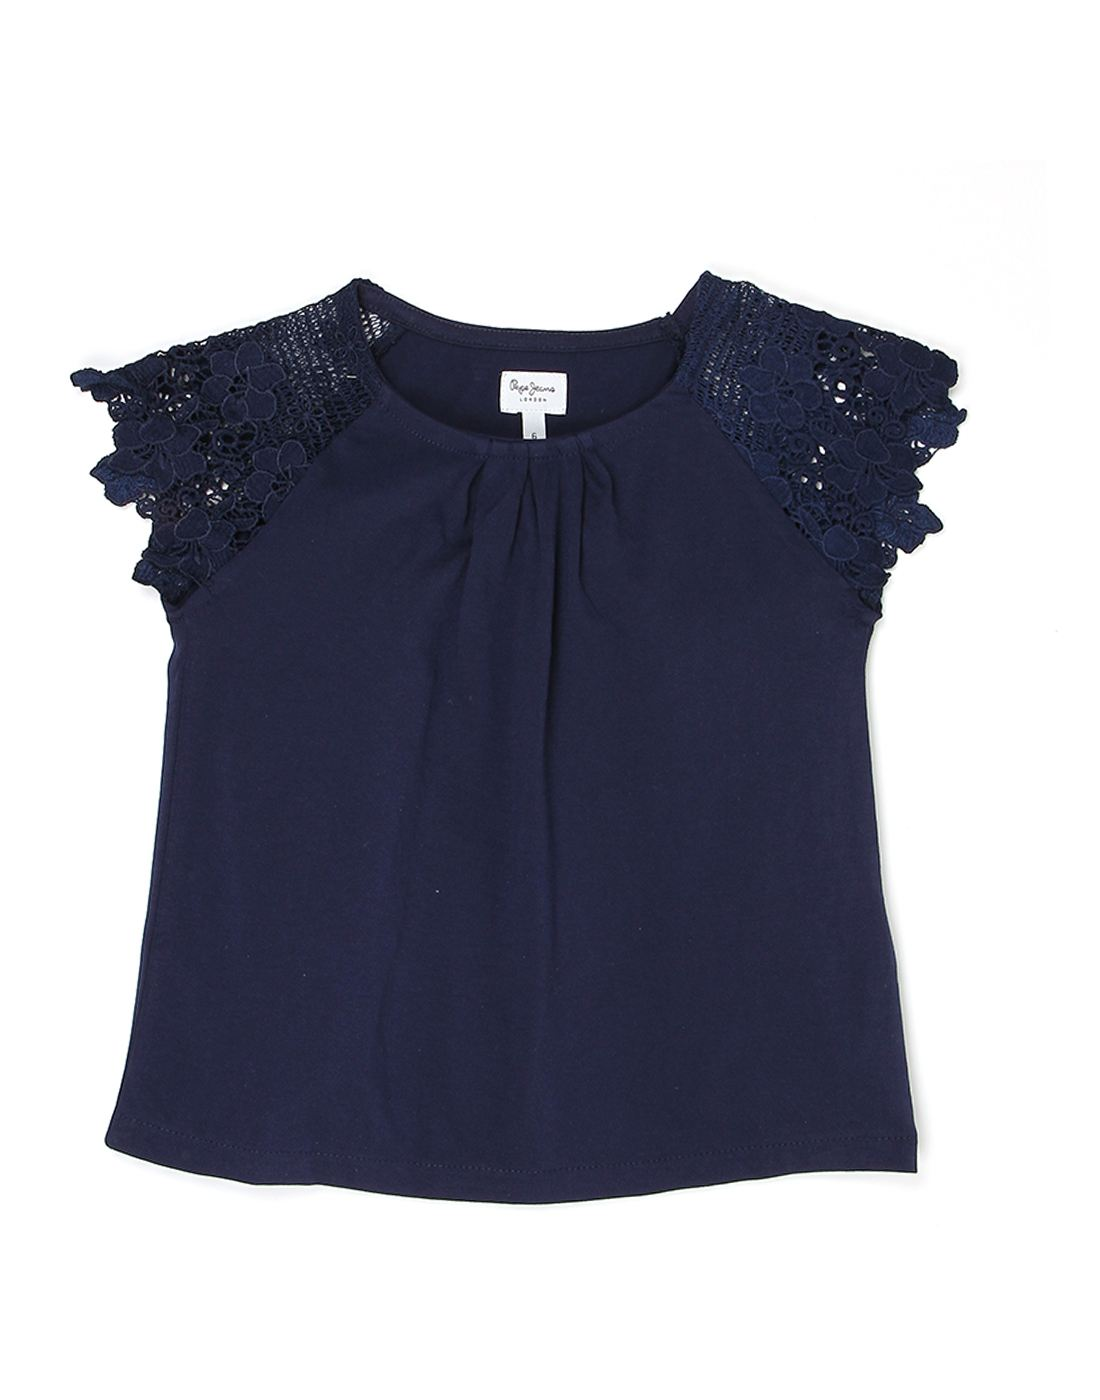 Pepe Jeans Girls Cotton Top